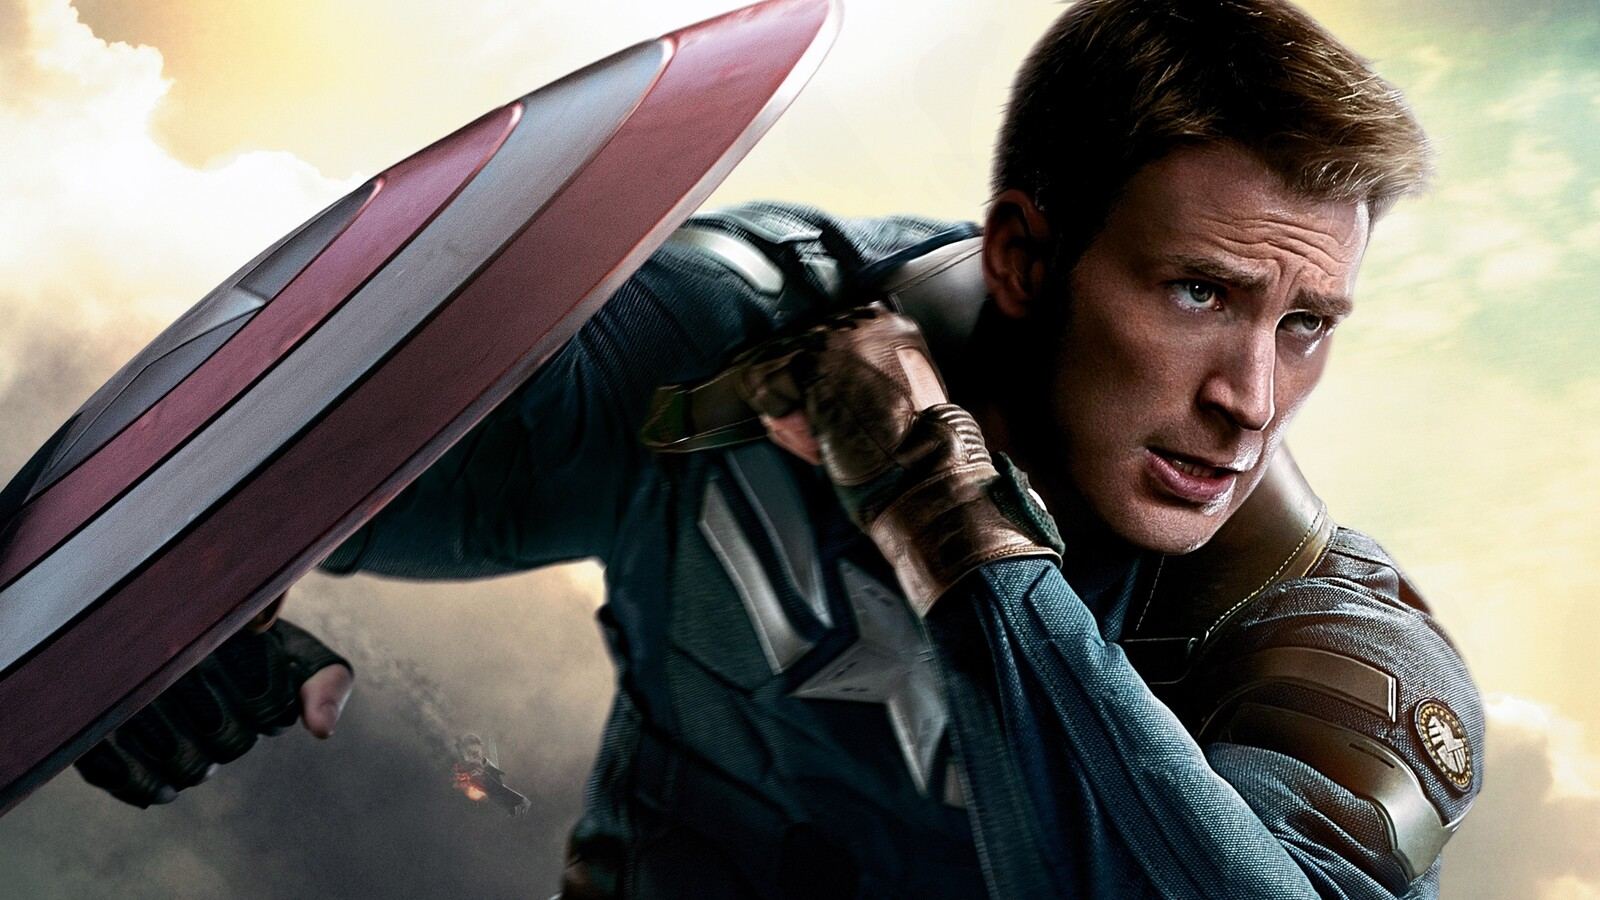 1600x900 chris evans captain america 1600x900 resolution - Captain america hd images download ...